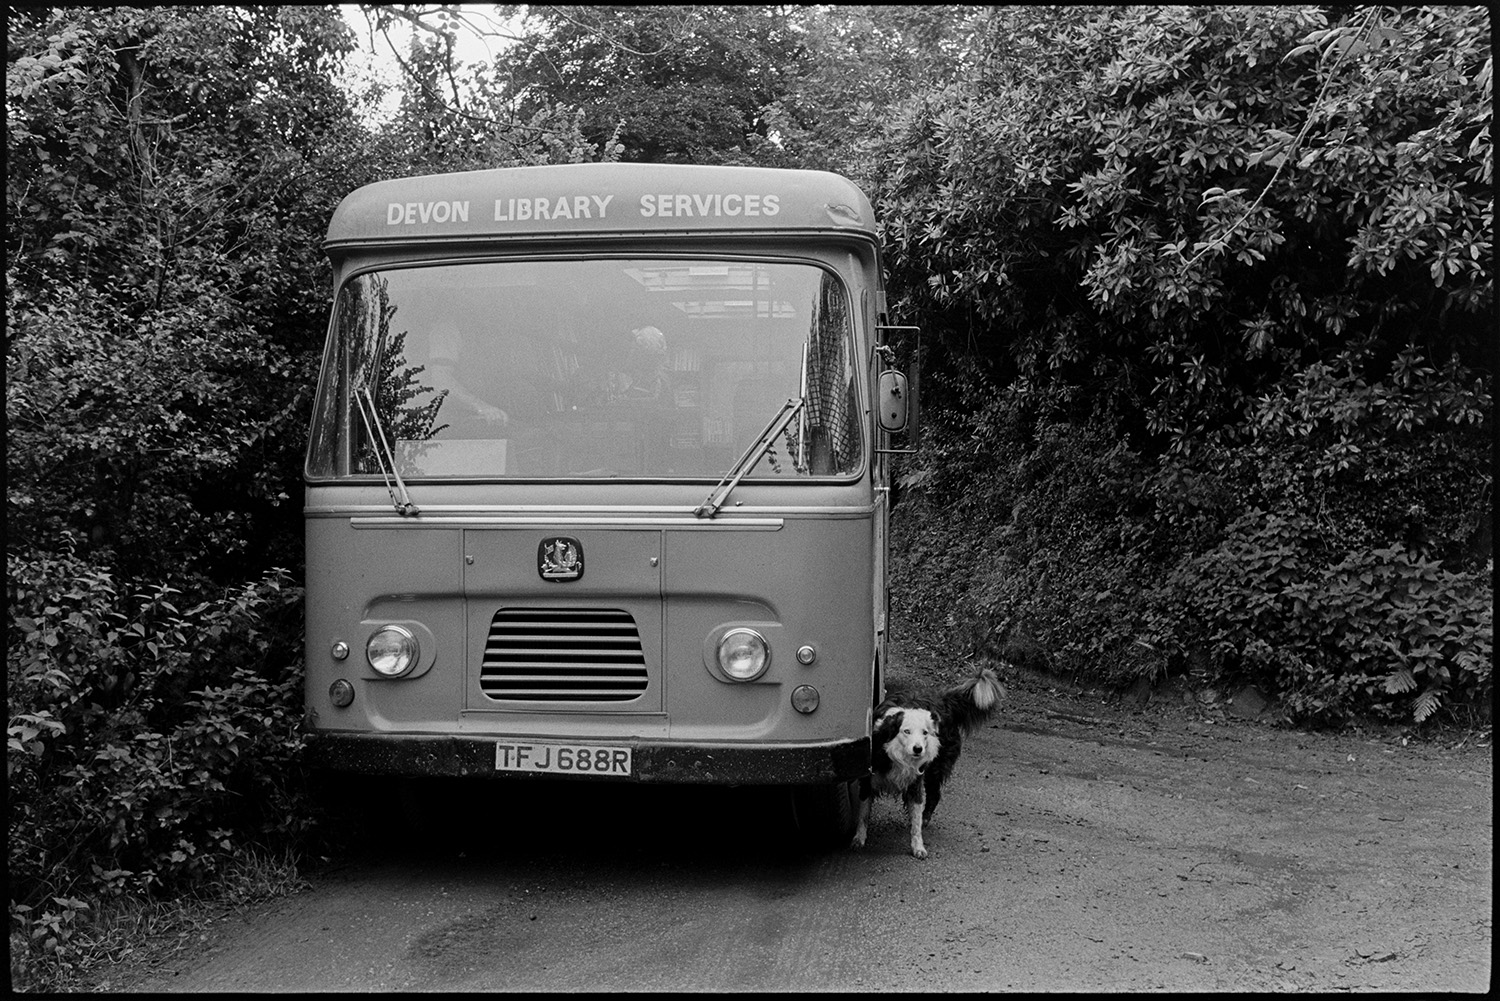 Library van parked in country lane, dog peeing on wheel. <br /> [A dog weeing on the front wheel of a library van parked in a lane by trees, possibly near Holsworthy.]